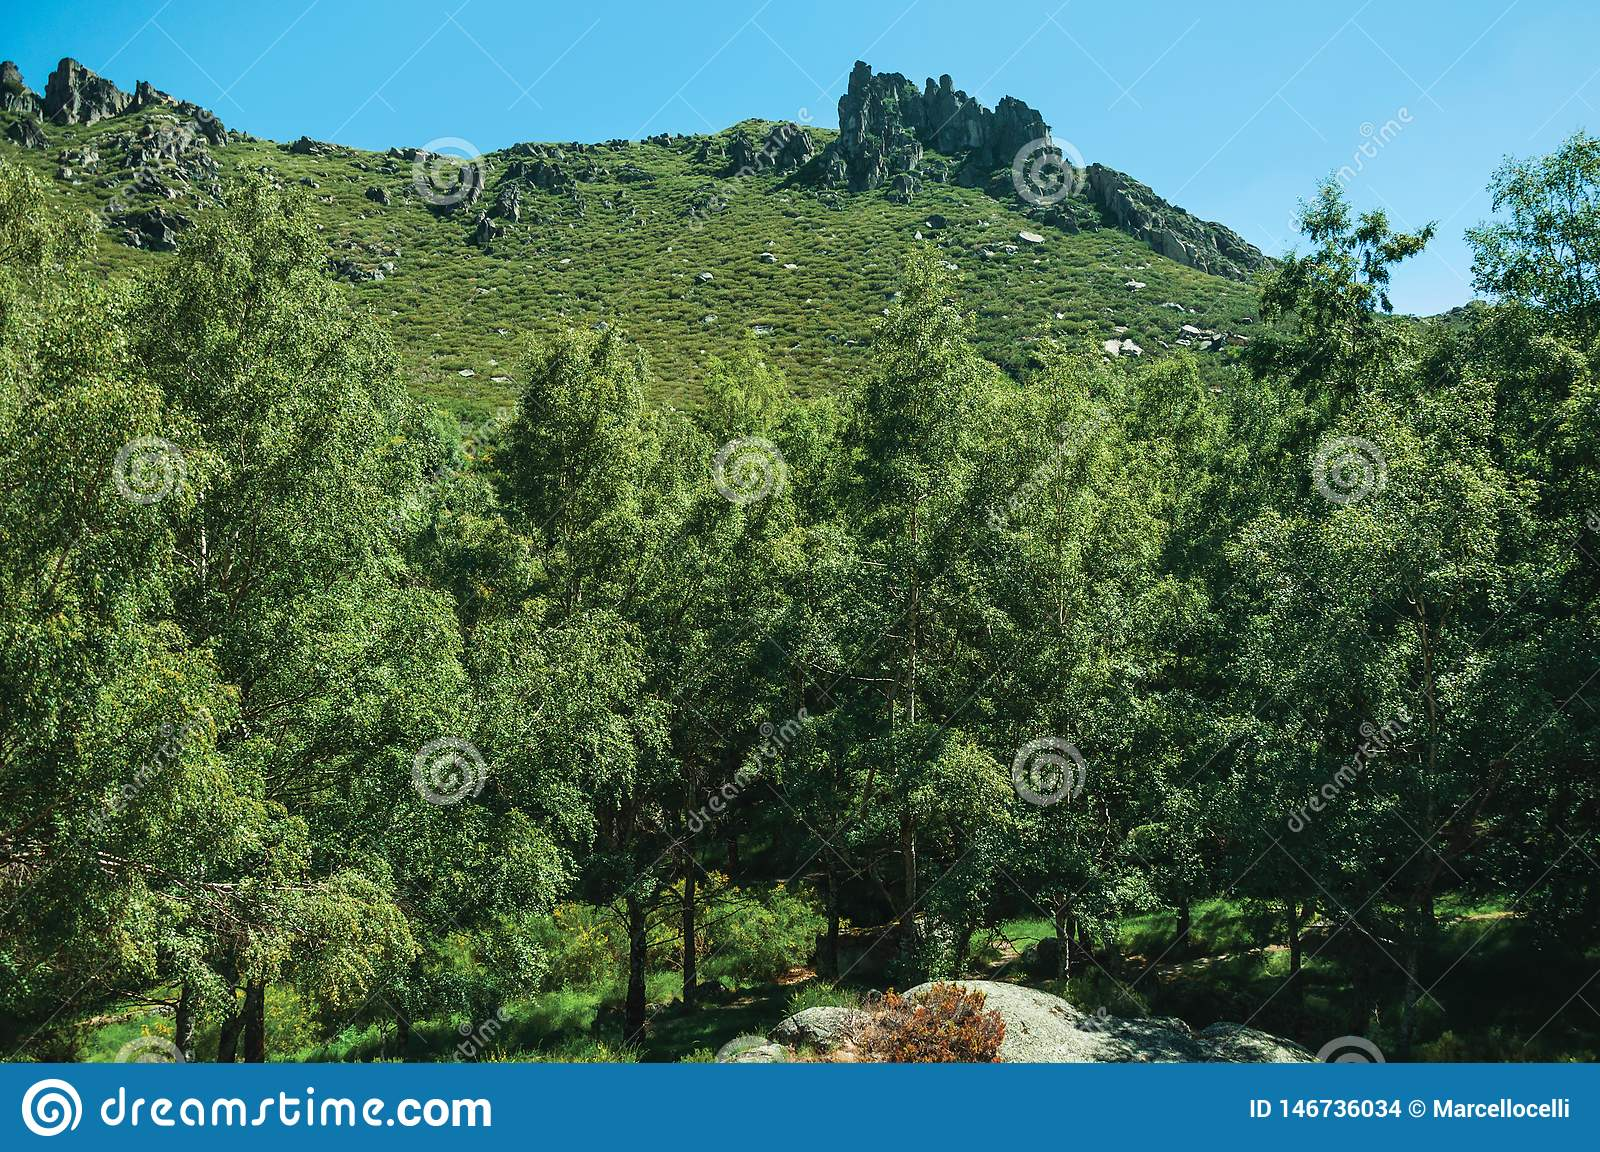 Landscape with rocky cliffs covered by bushes and forest